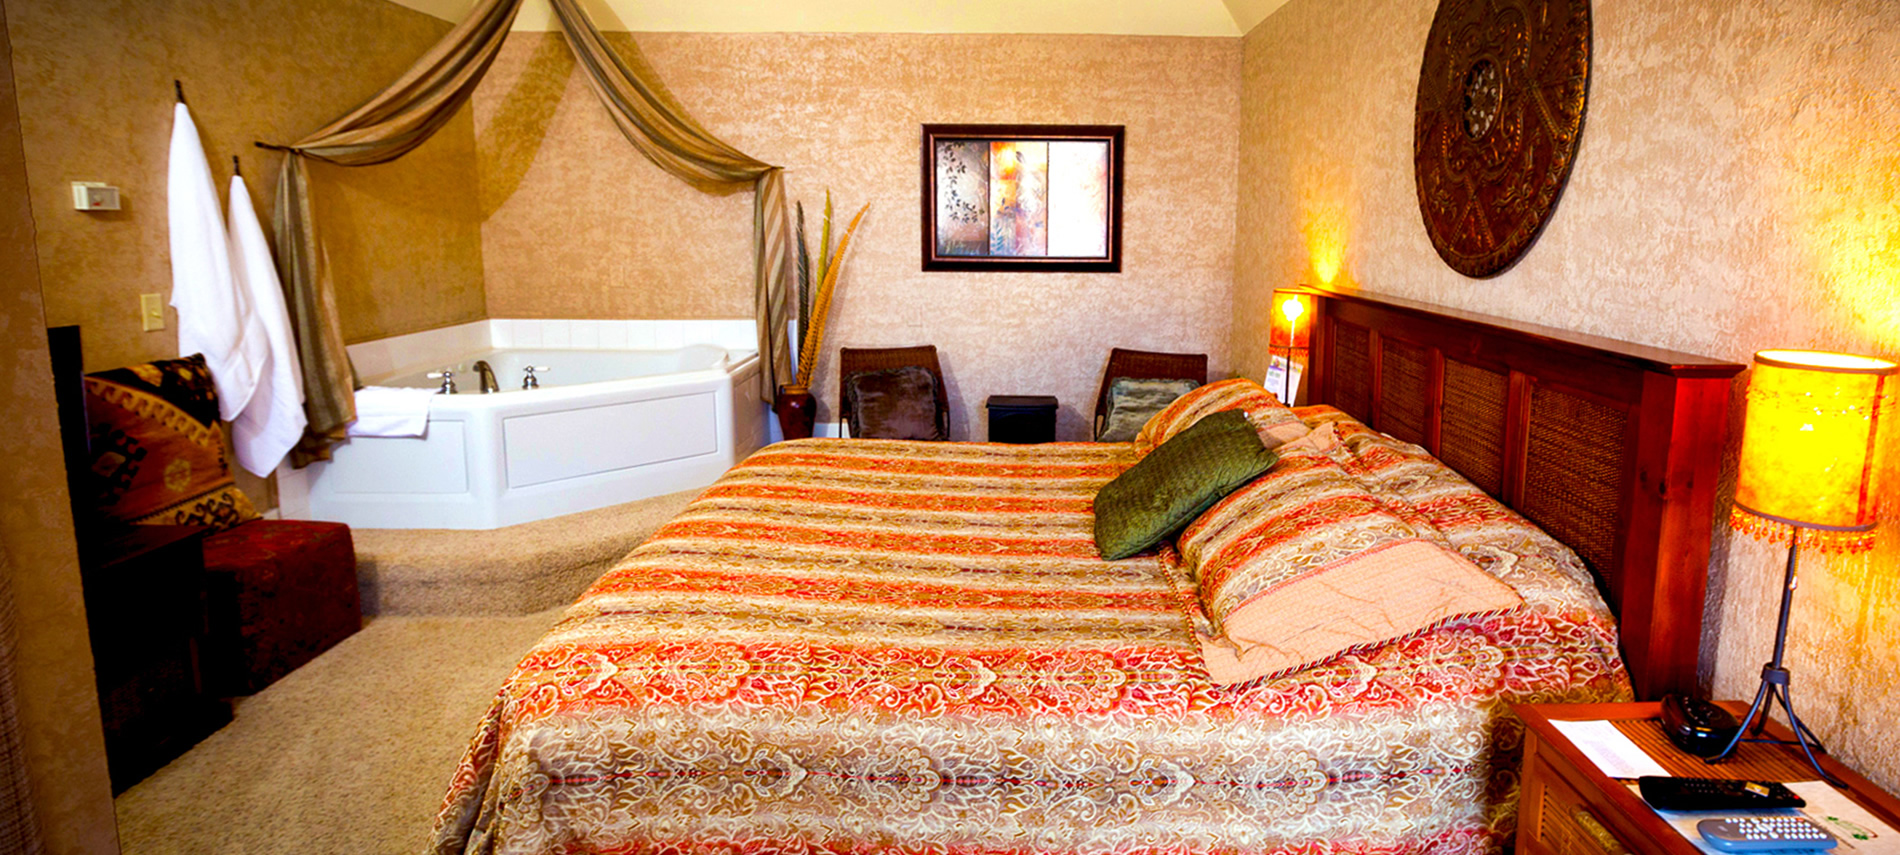 An orange and tan covered bed in the foreground with a white jacuzzi tub in the left corner background